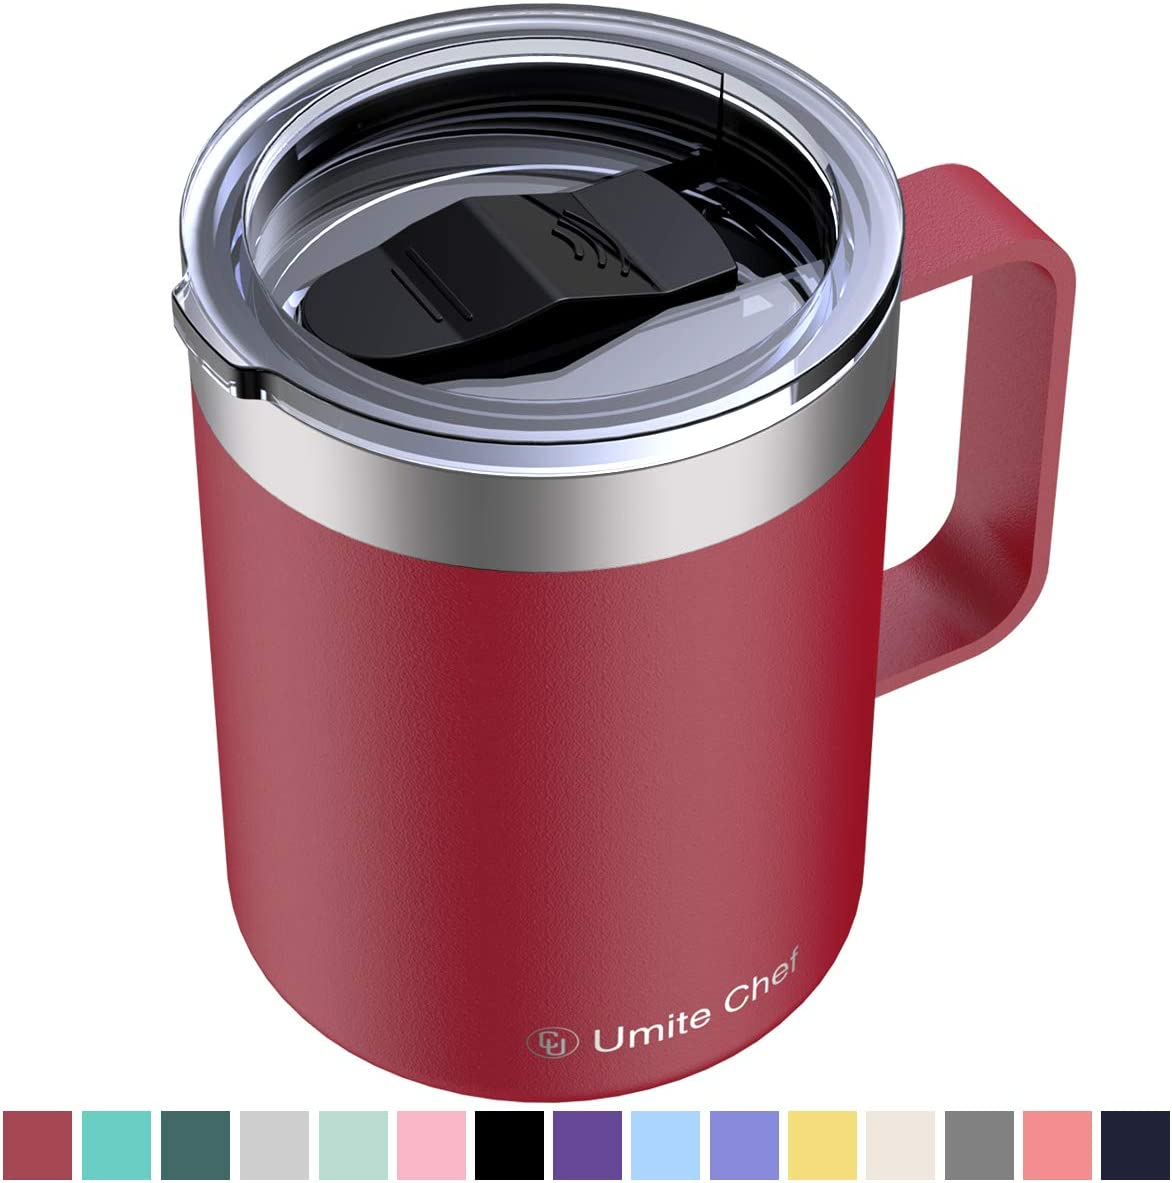 Umite Chef Stainless Steel Insulated Coffee Mug Tumbler with Handle, 12 oz Double Wall Vacuum Tumbler Cup with Lid Insulated Camping Tea Flask for Hot & Cold Drinks(Wine Red)